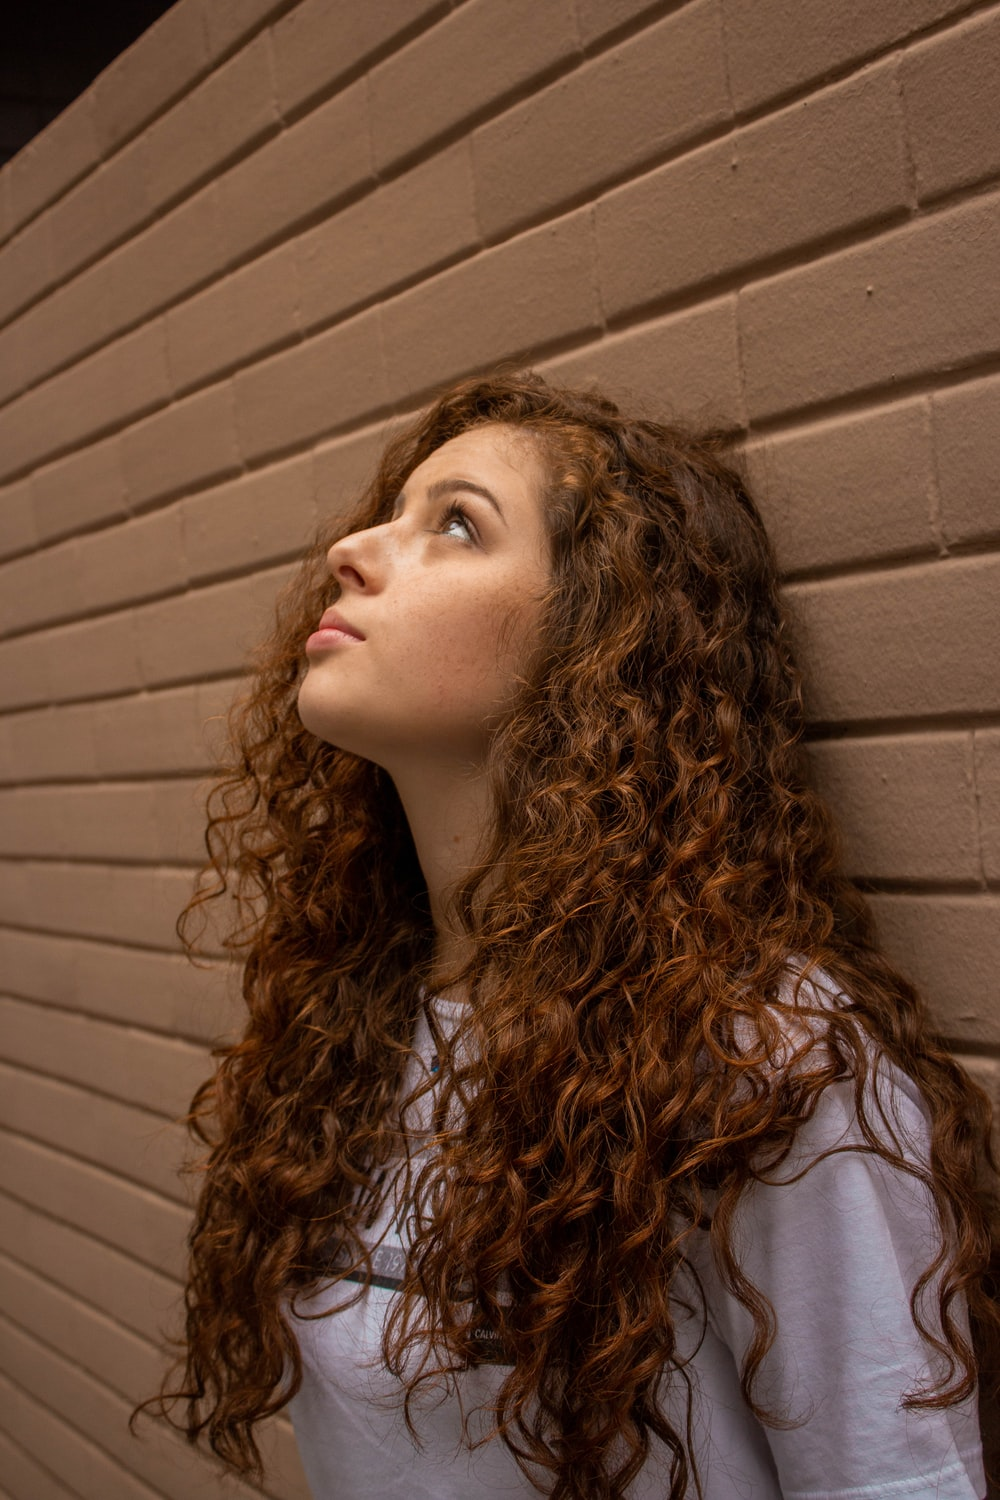 woman in white shirt standing beside brown wall